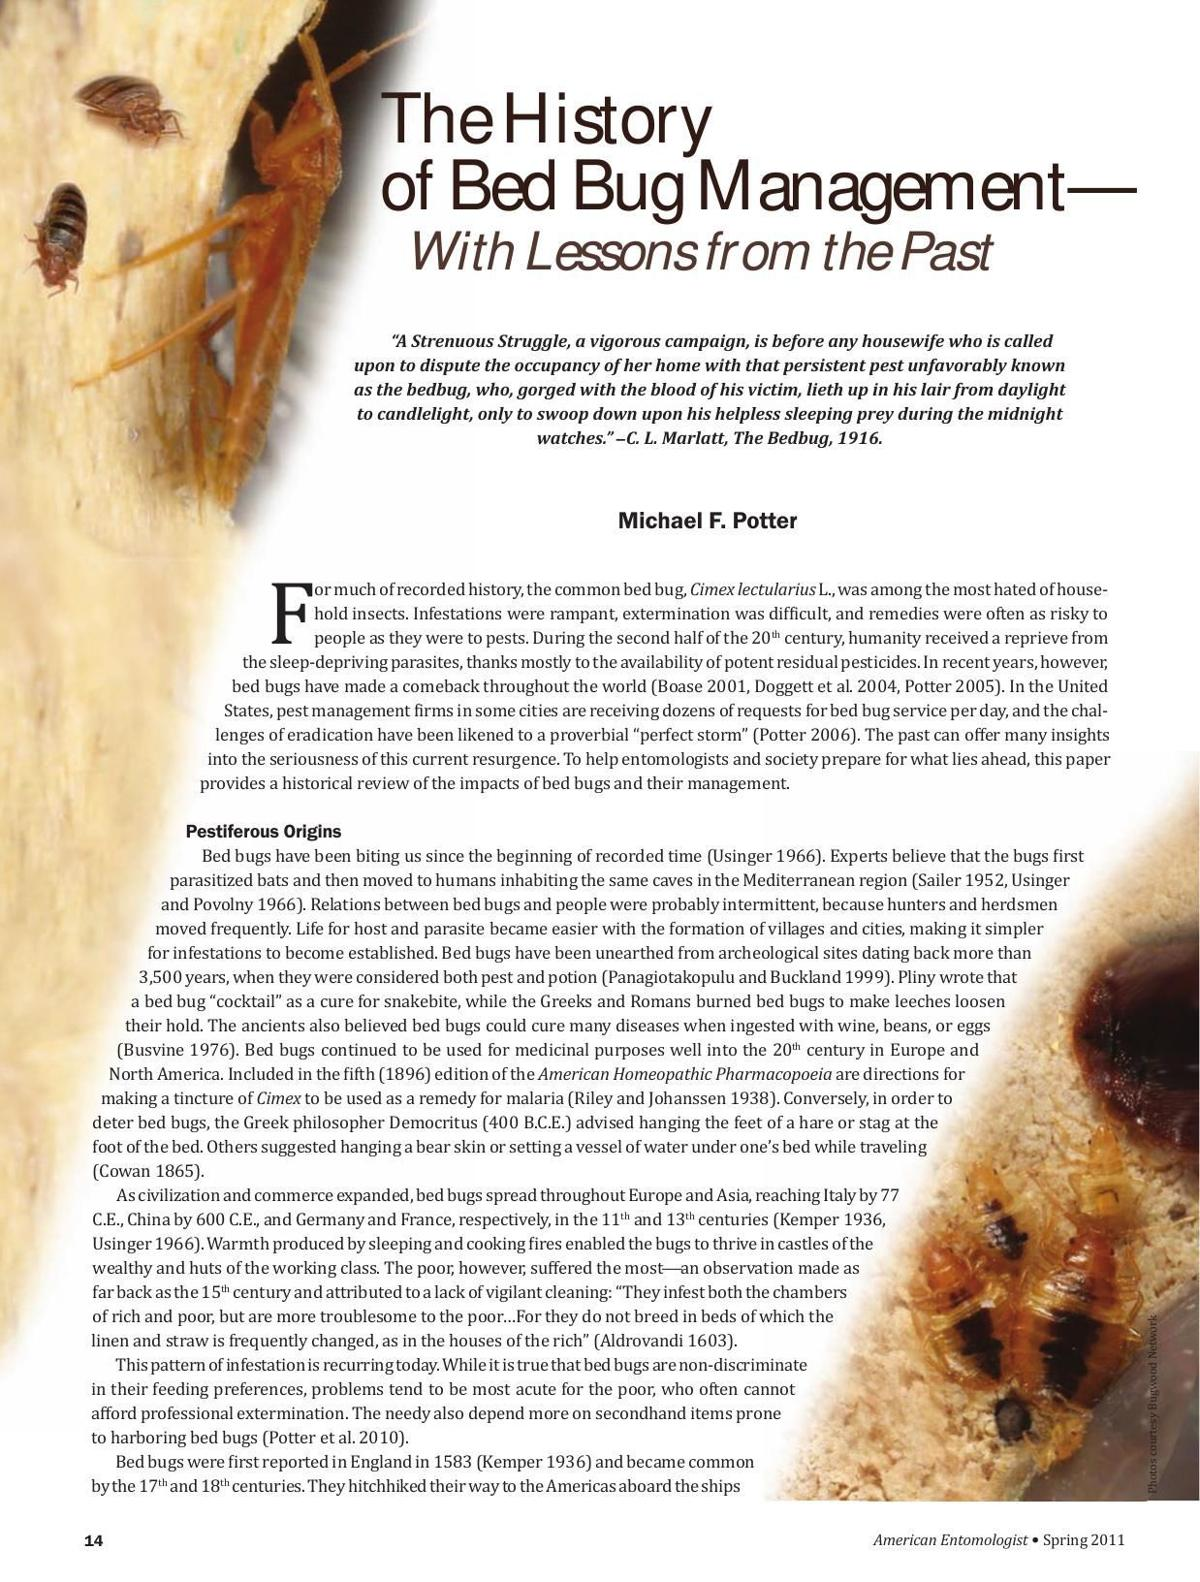 Bed Bug Management History